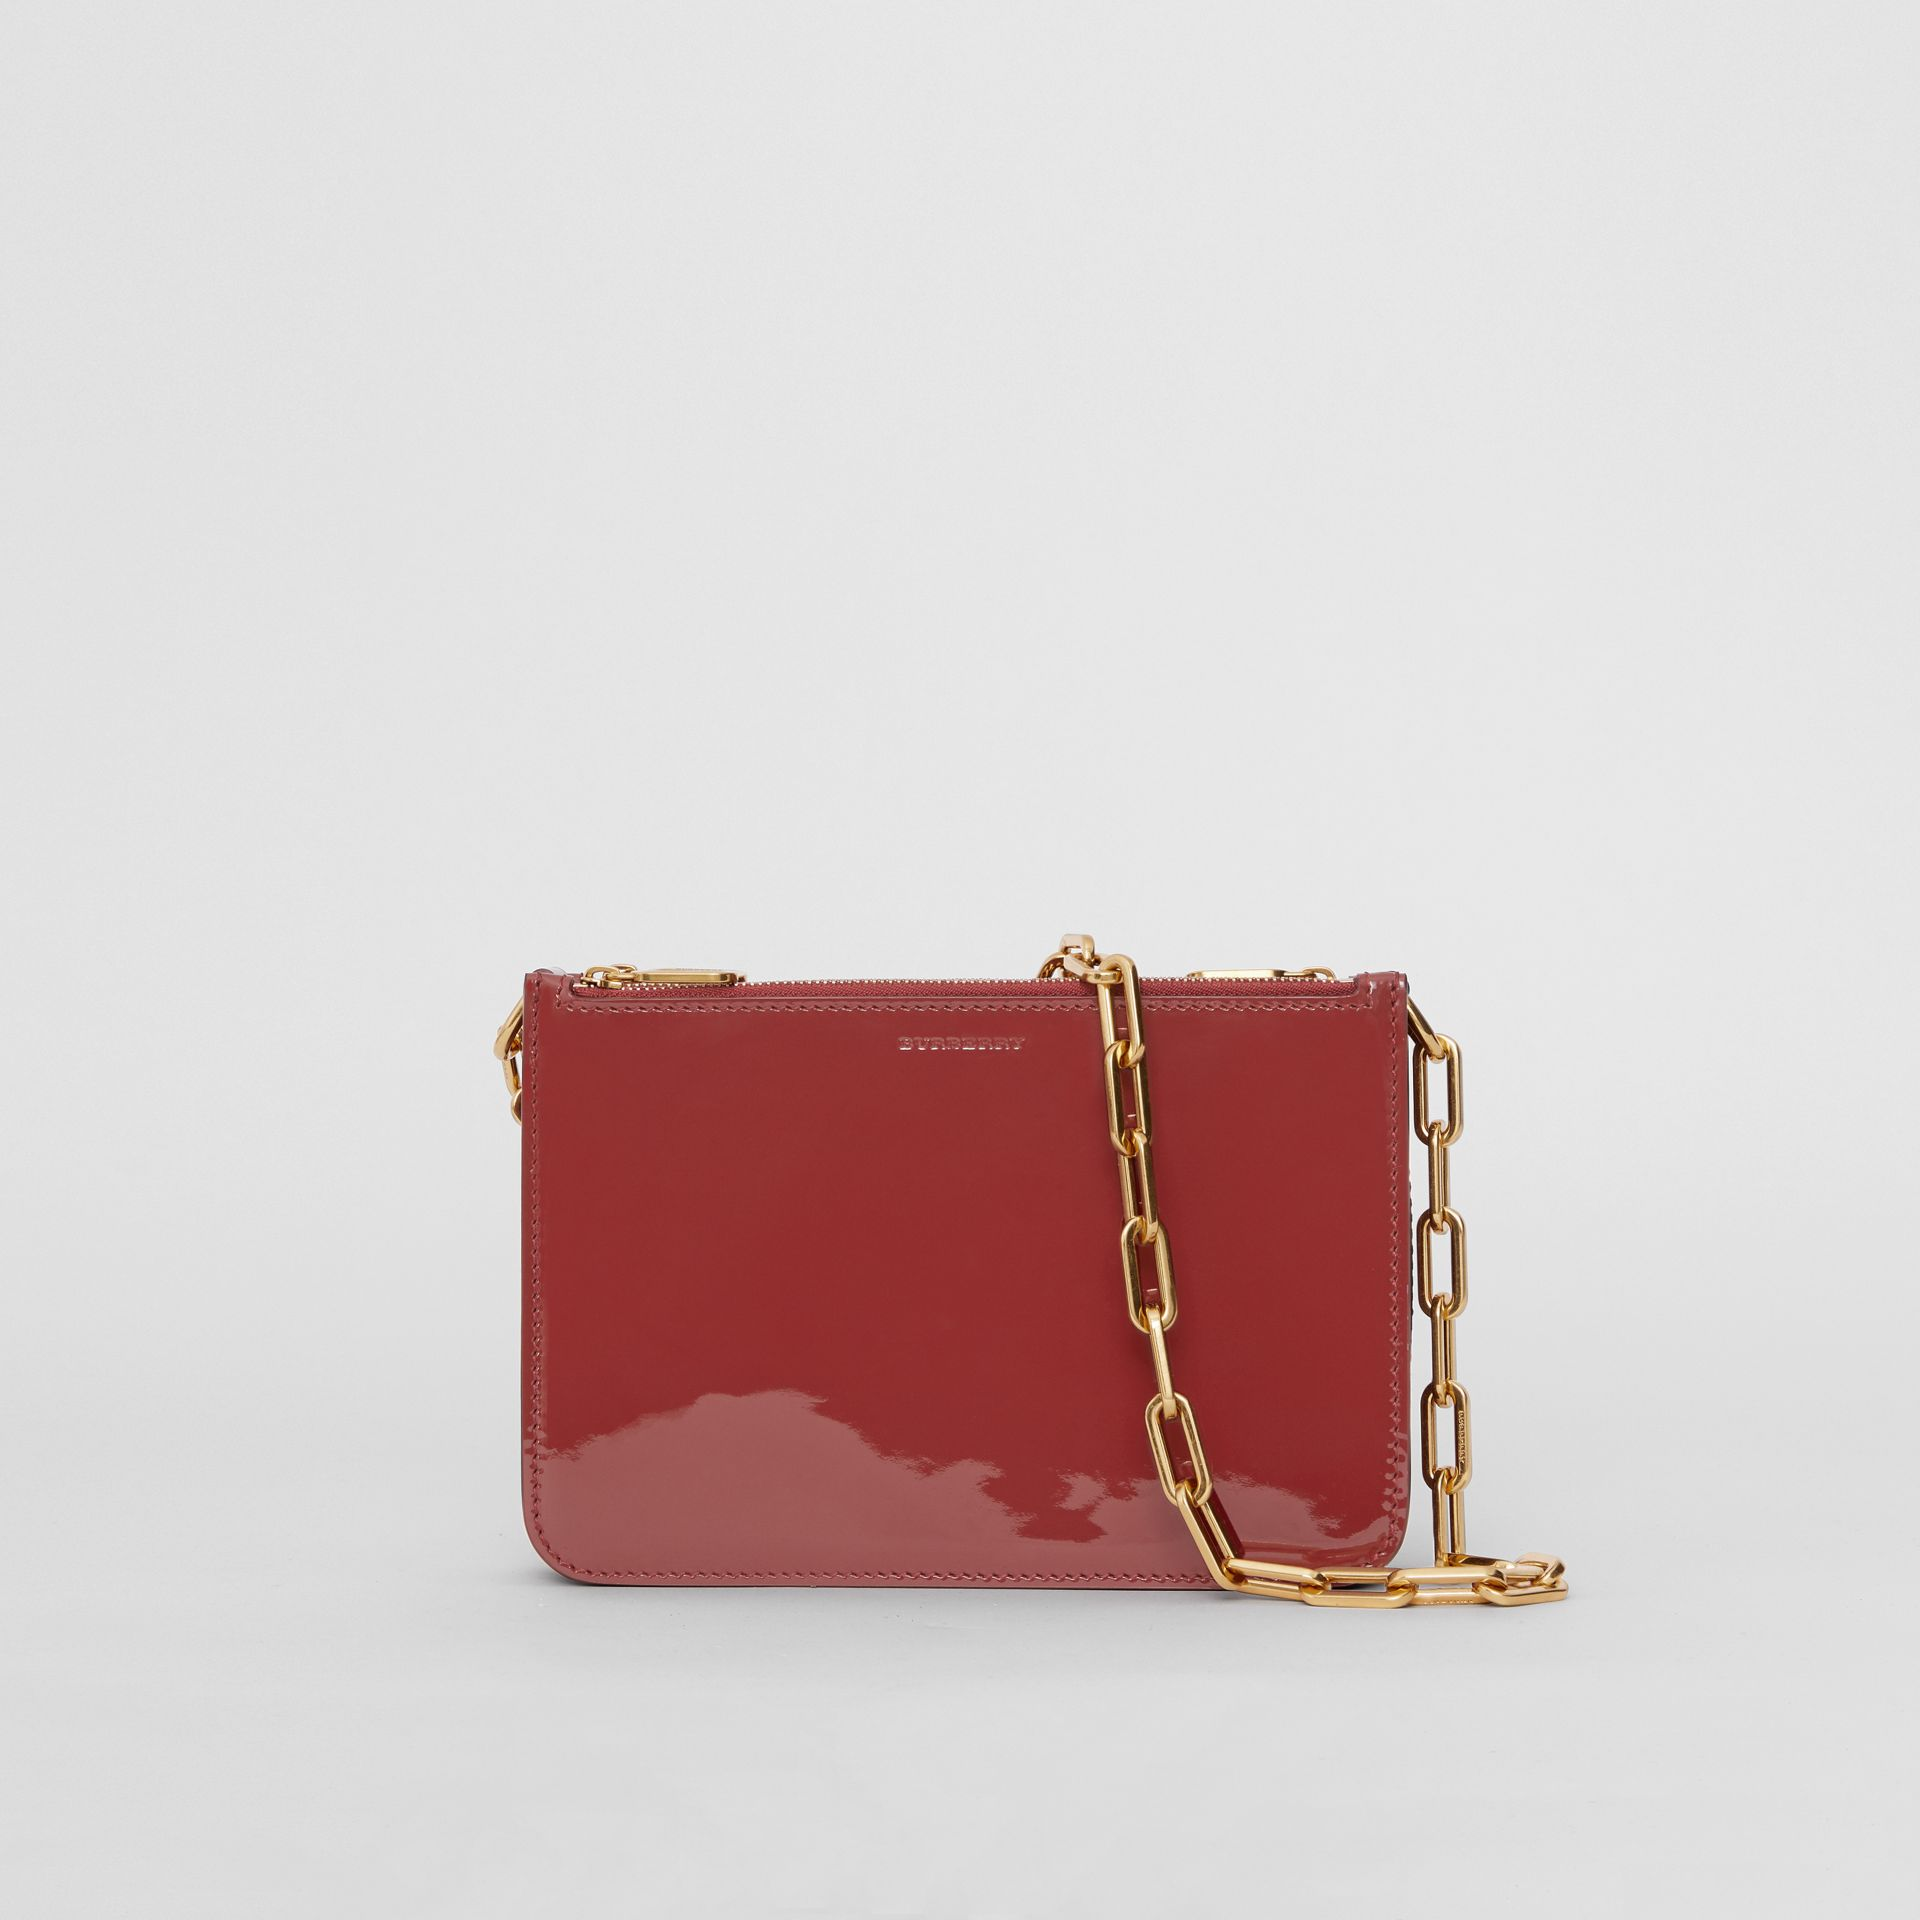 Triple Zip Patent Leather Crossbody Bag in Crimson - Women | Burberry United States - gallery image 0